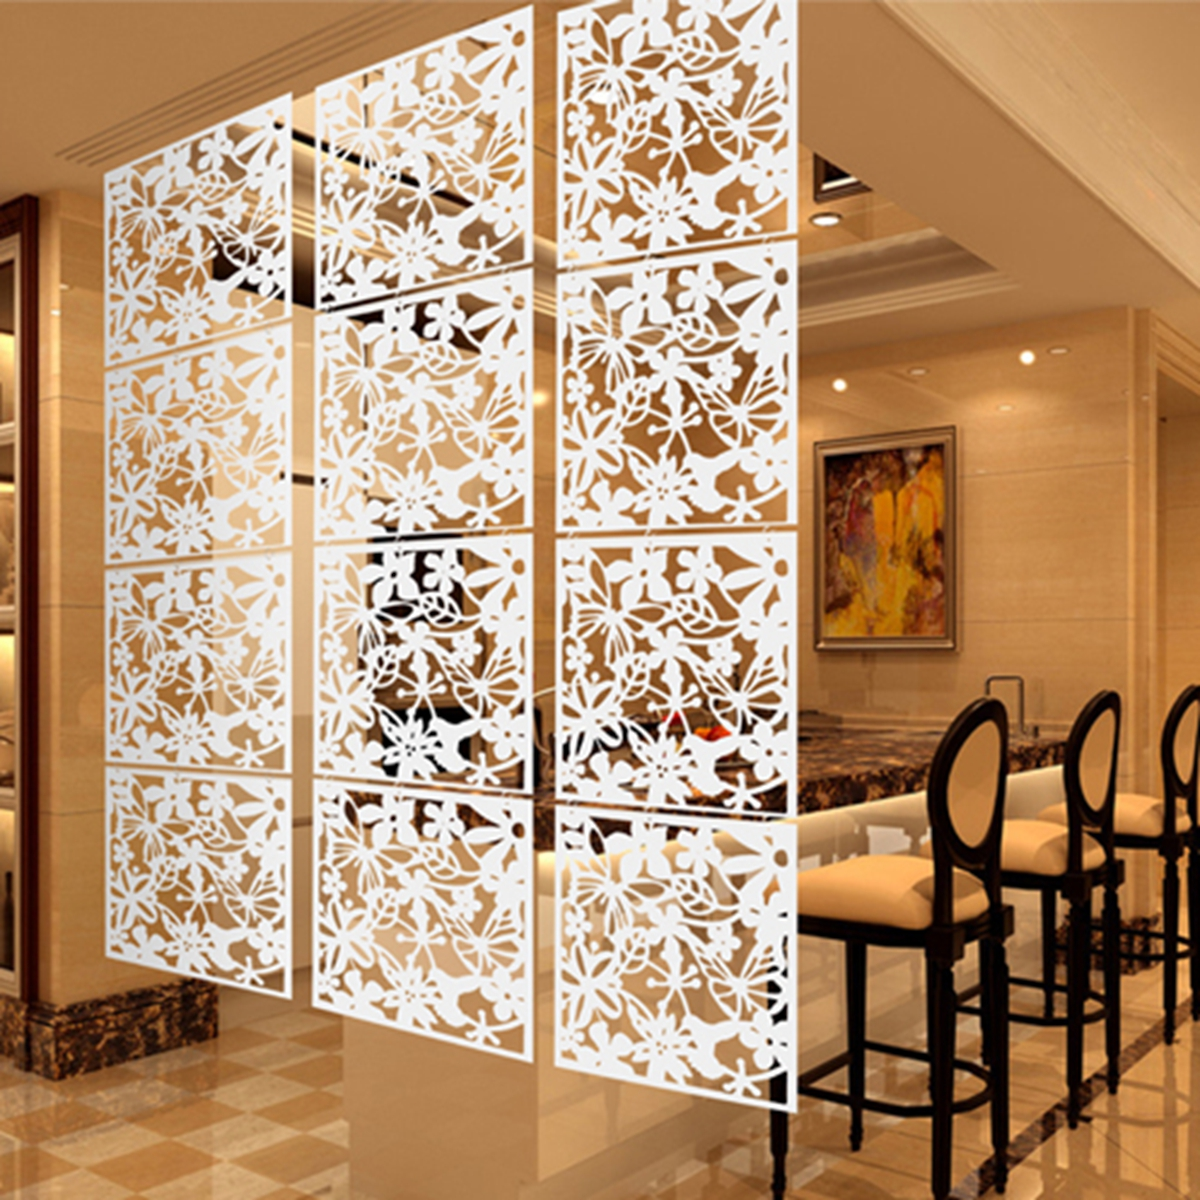 riley on curtain free window shipping orders decor garden over curtains lush home product panel